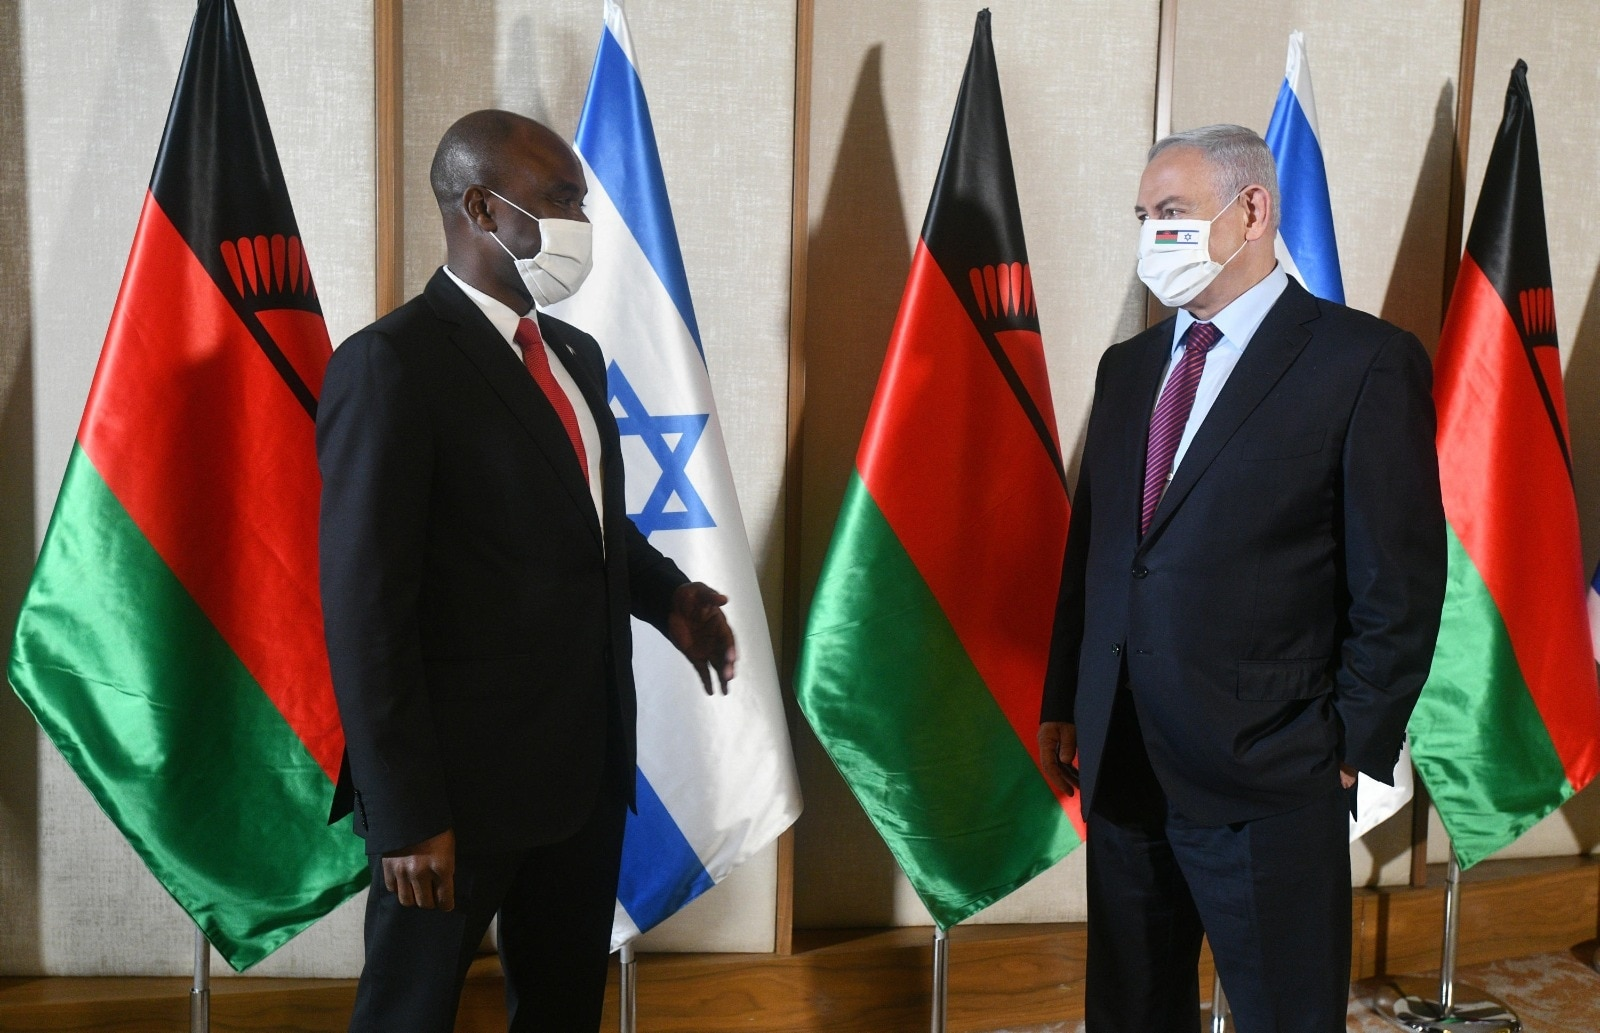 Malawi Announces Plans to Open Embassy in Jerusalem by Summer 2021